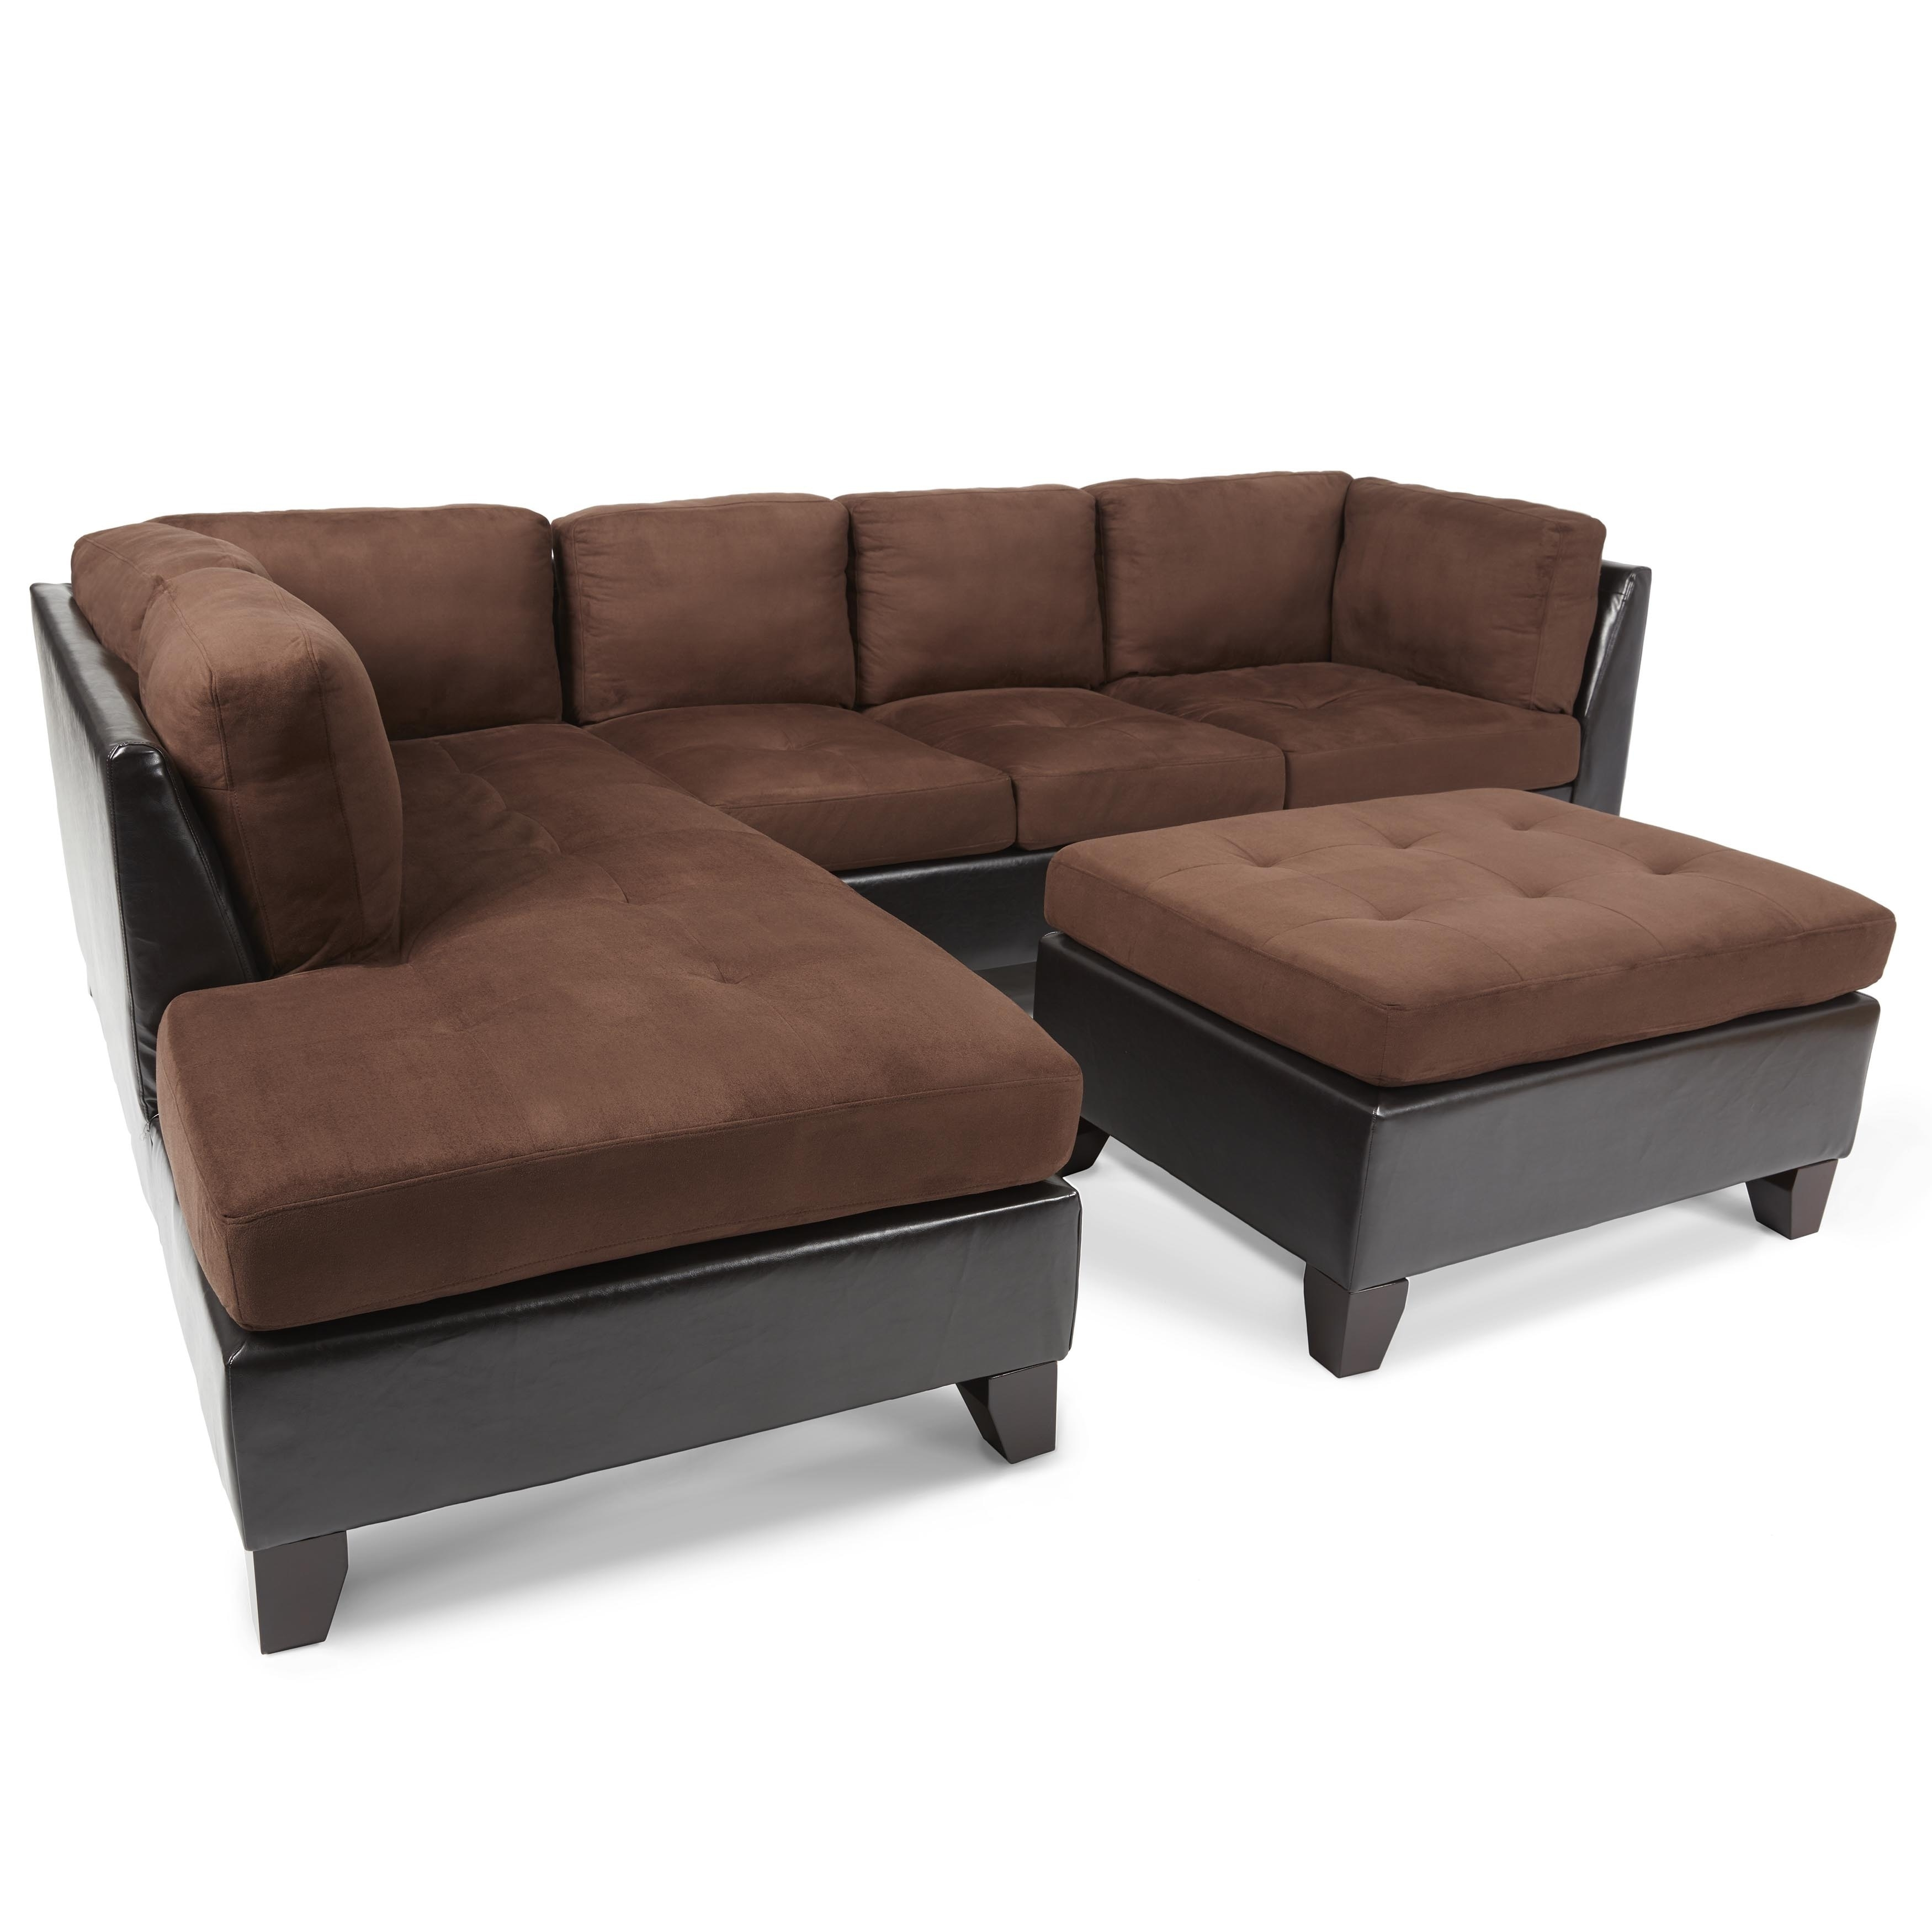 Abbyson Charlotte Dark Brown Sectional Sofa And Ottoman – Free With Charlotte Sectional Sofas (View 10 of 10)